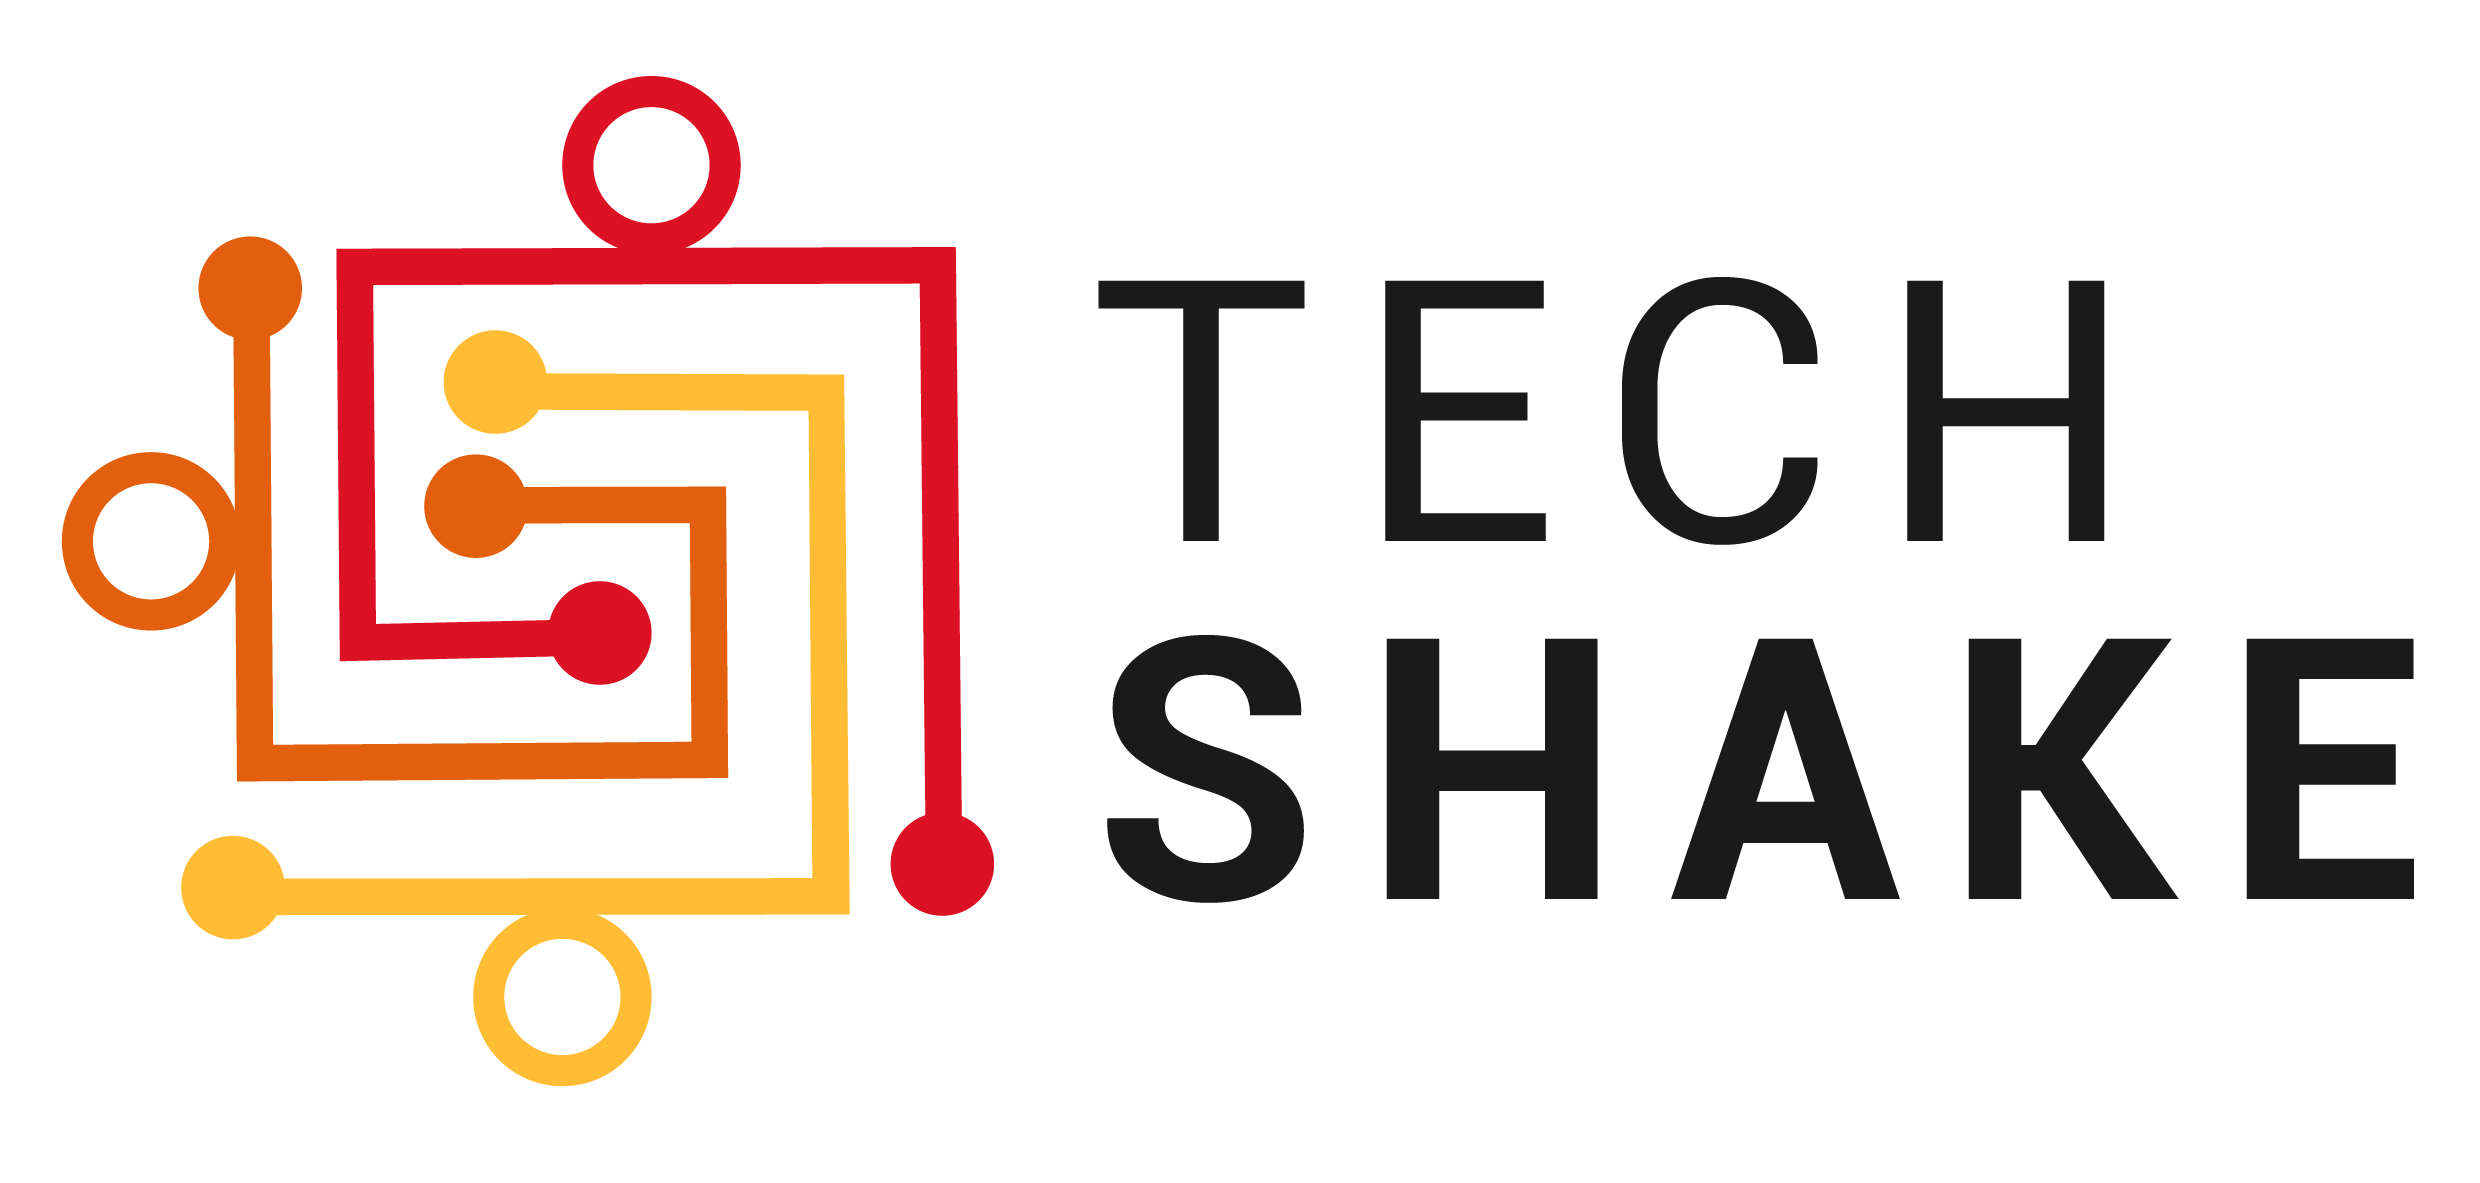 Techshake logo inverted